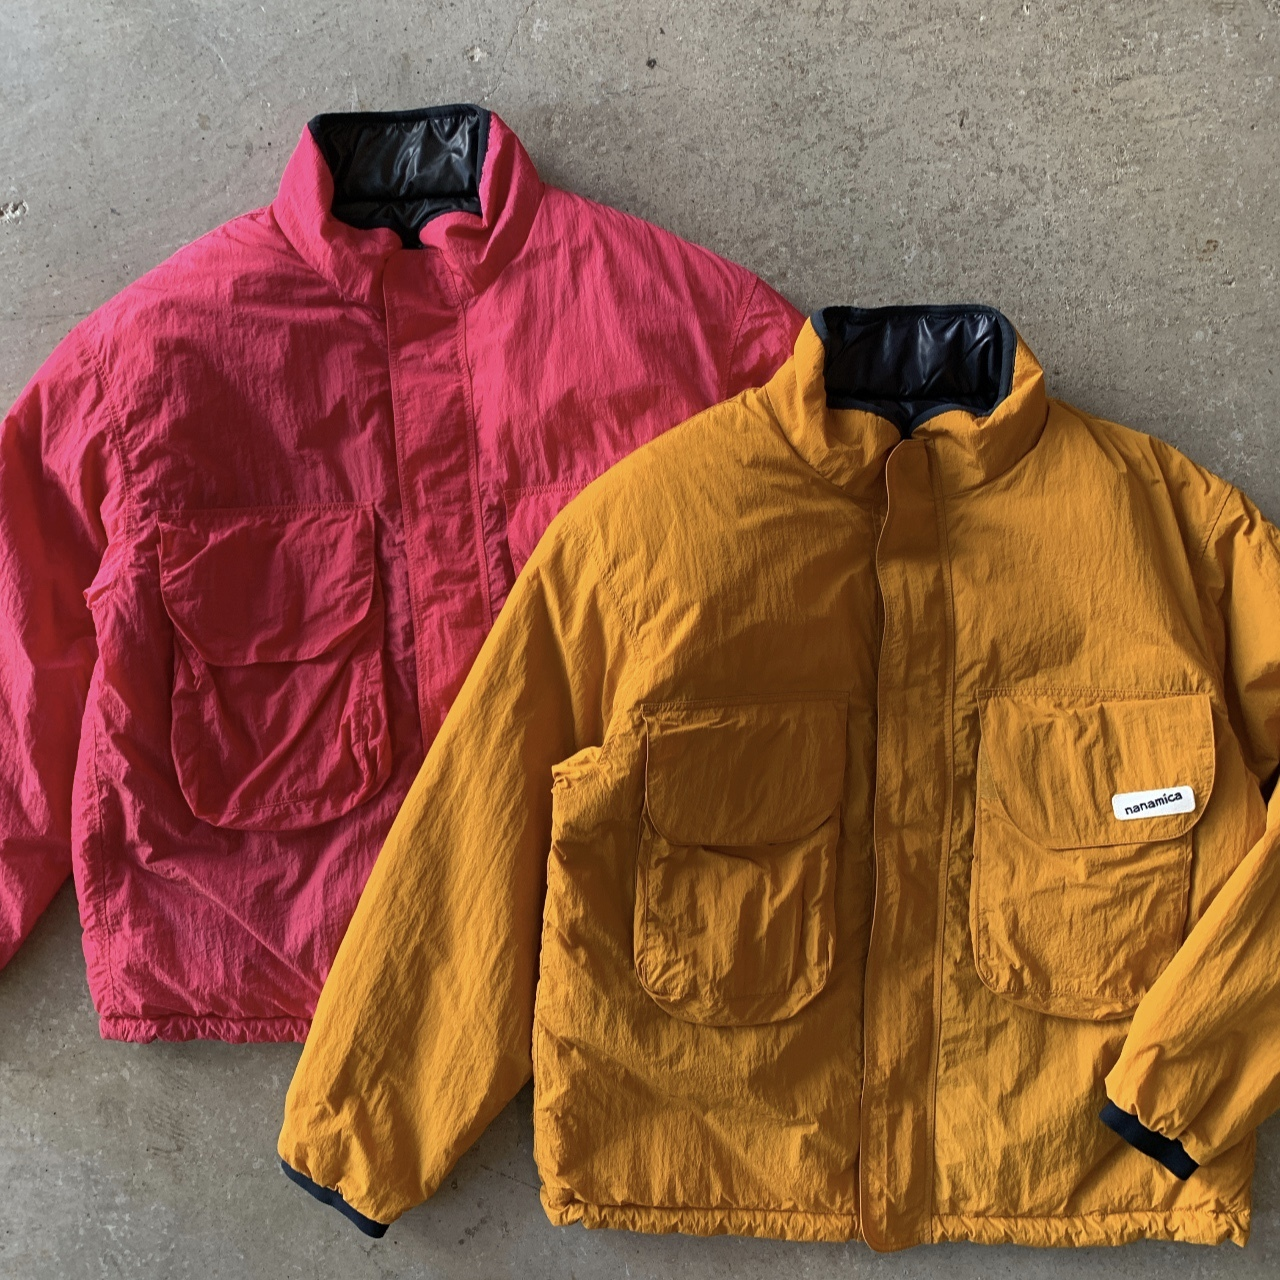 nanamica - nanamican Reversible Insulation Jacket